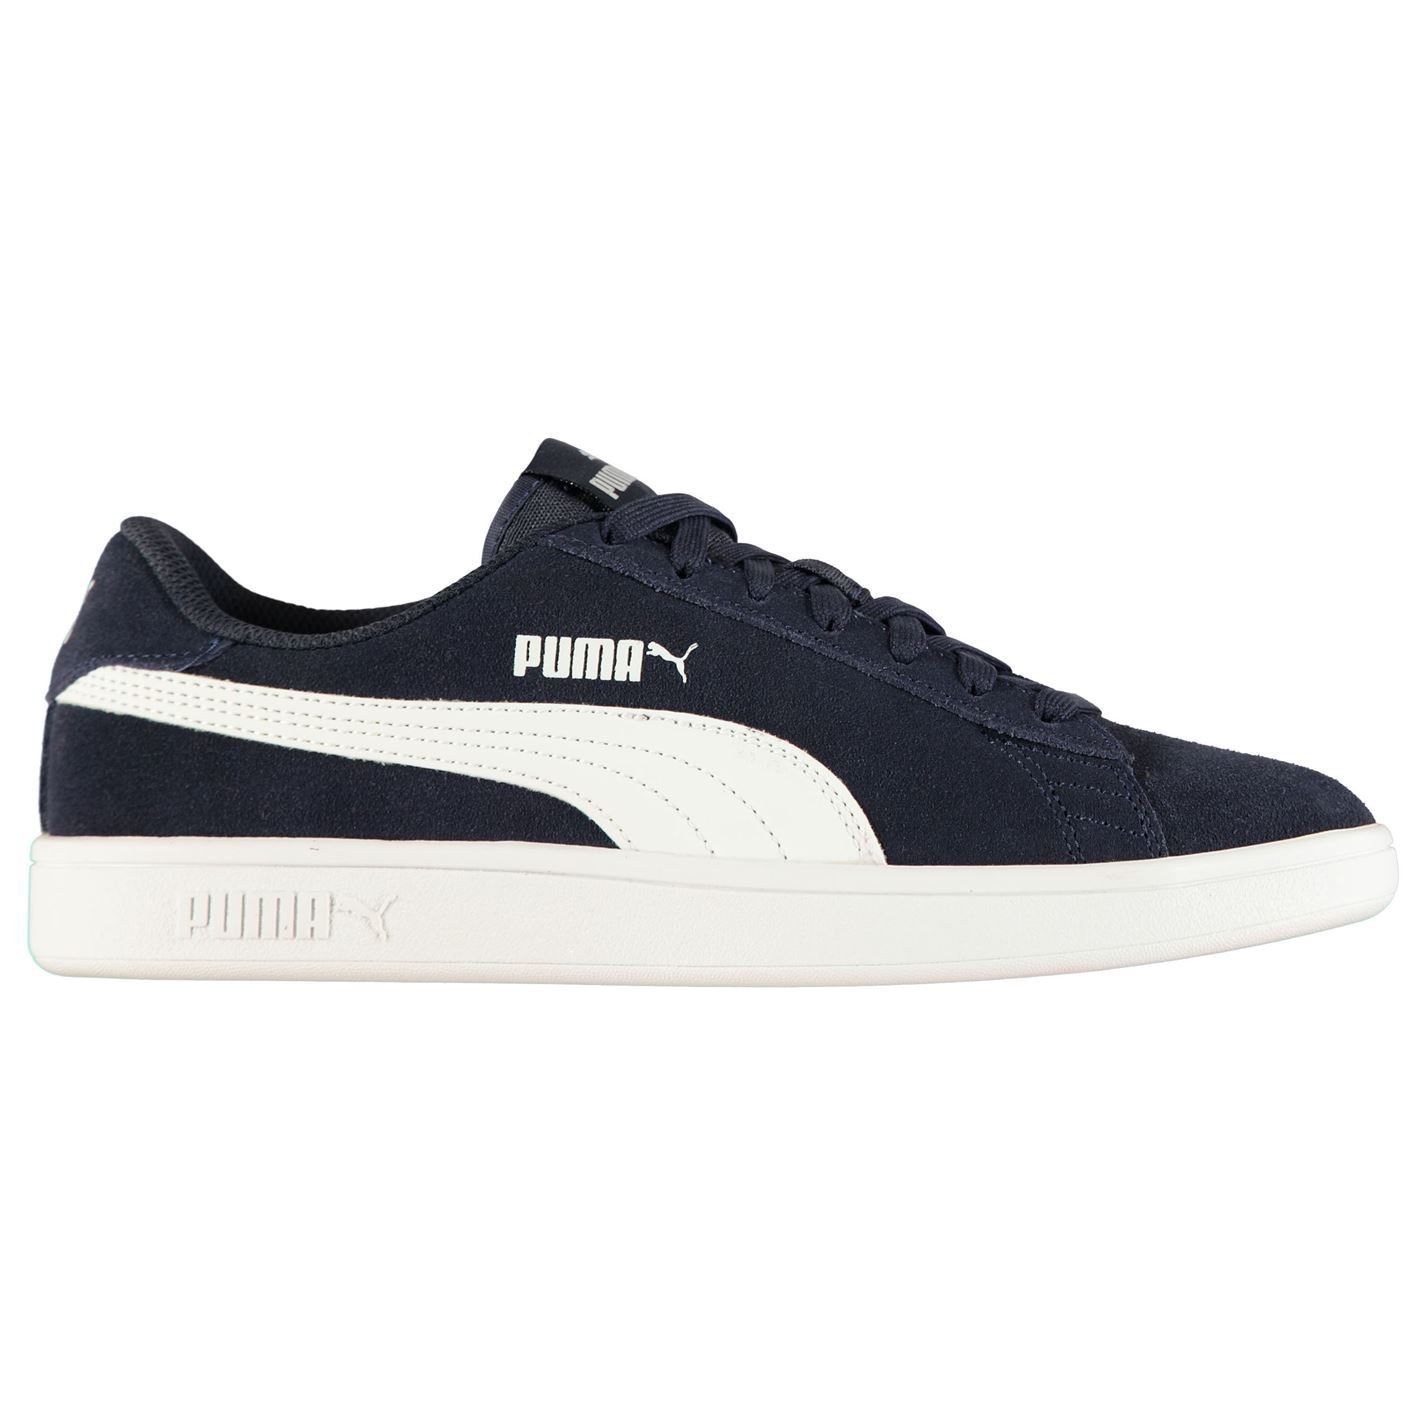 Puma-Smash-V2-Suede-Trainers-Mens-Shoes-Sneakers-Athleisure-Footwear thumbnail 10